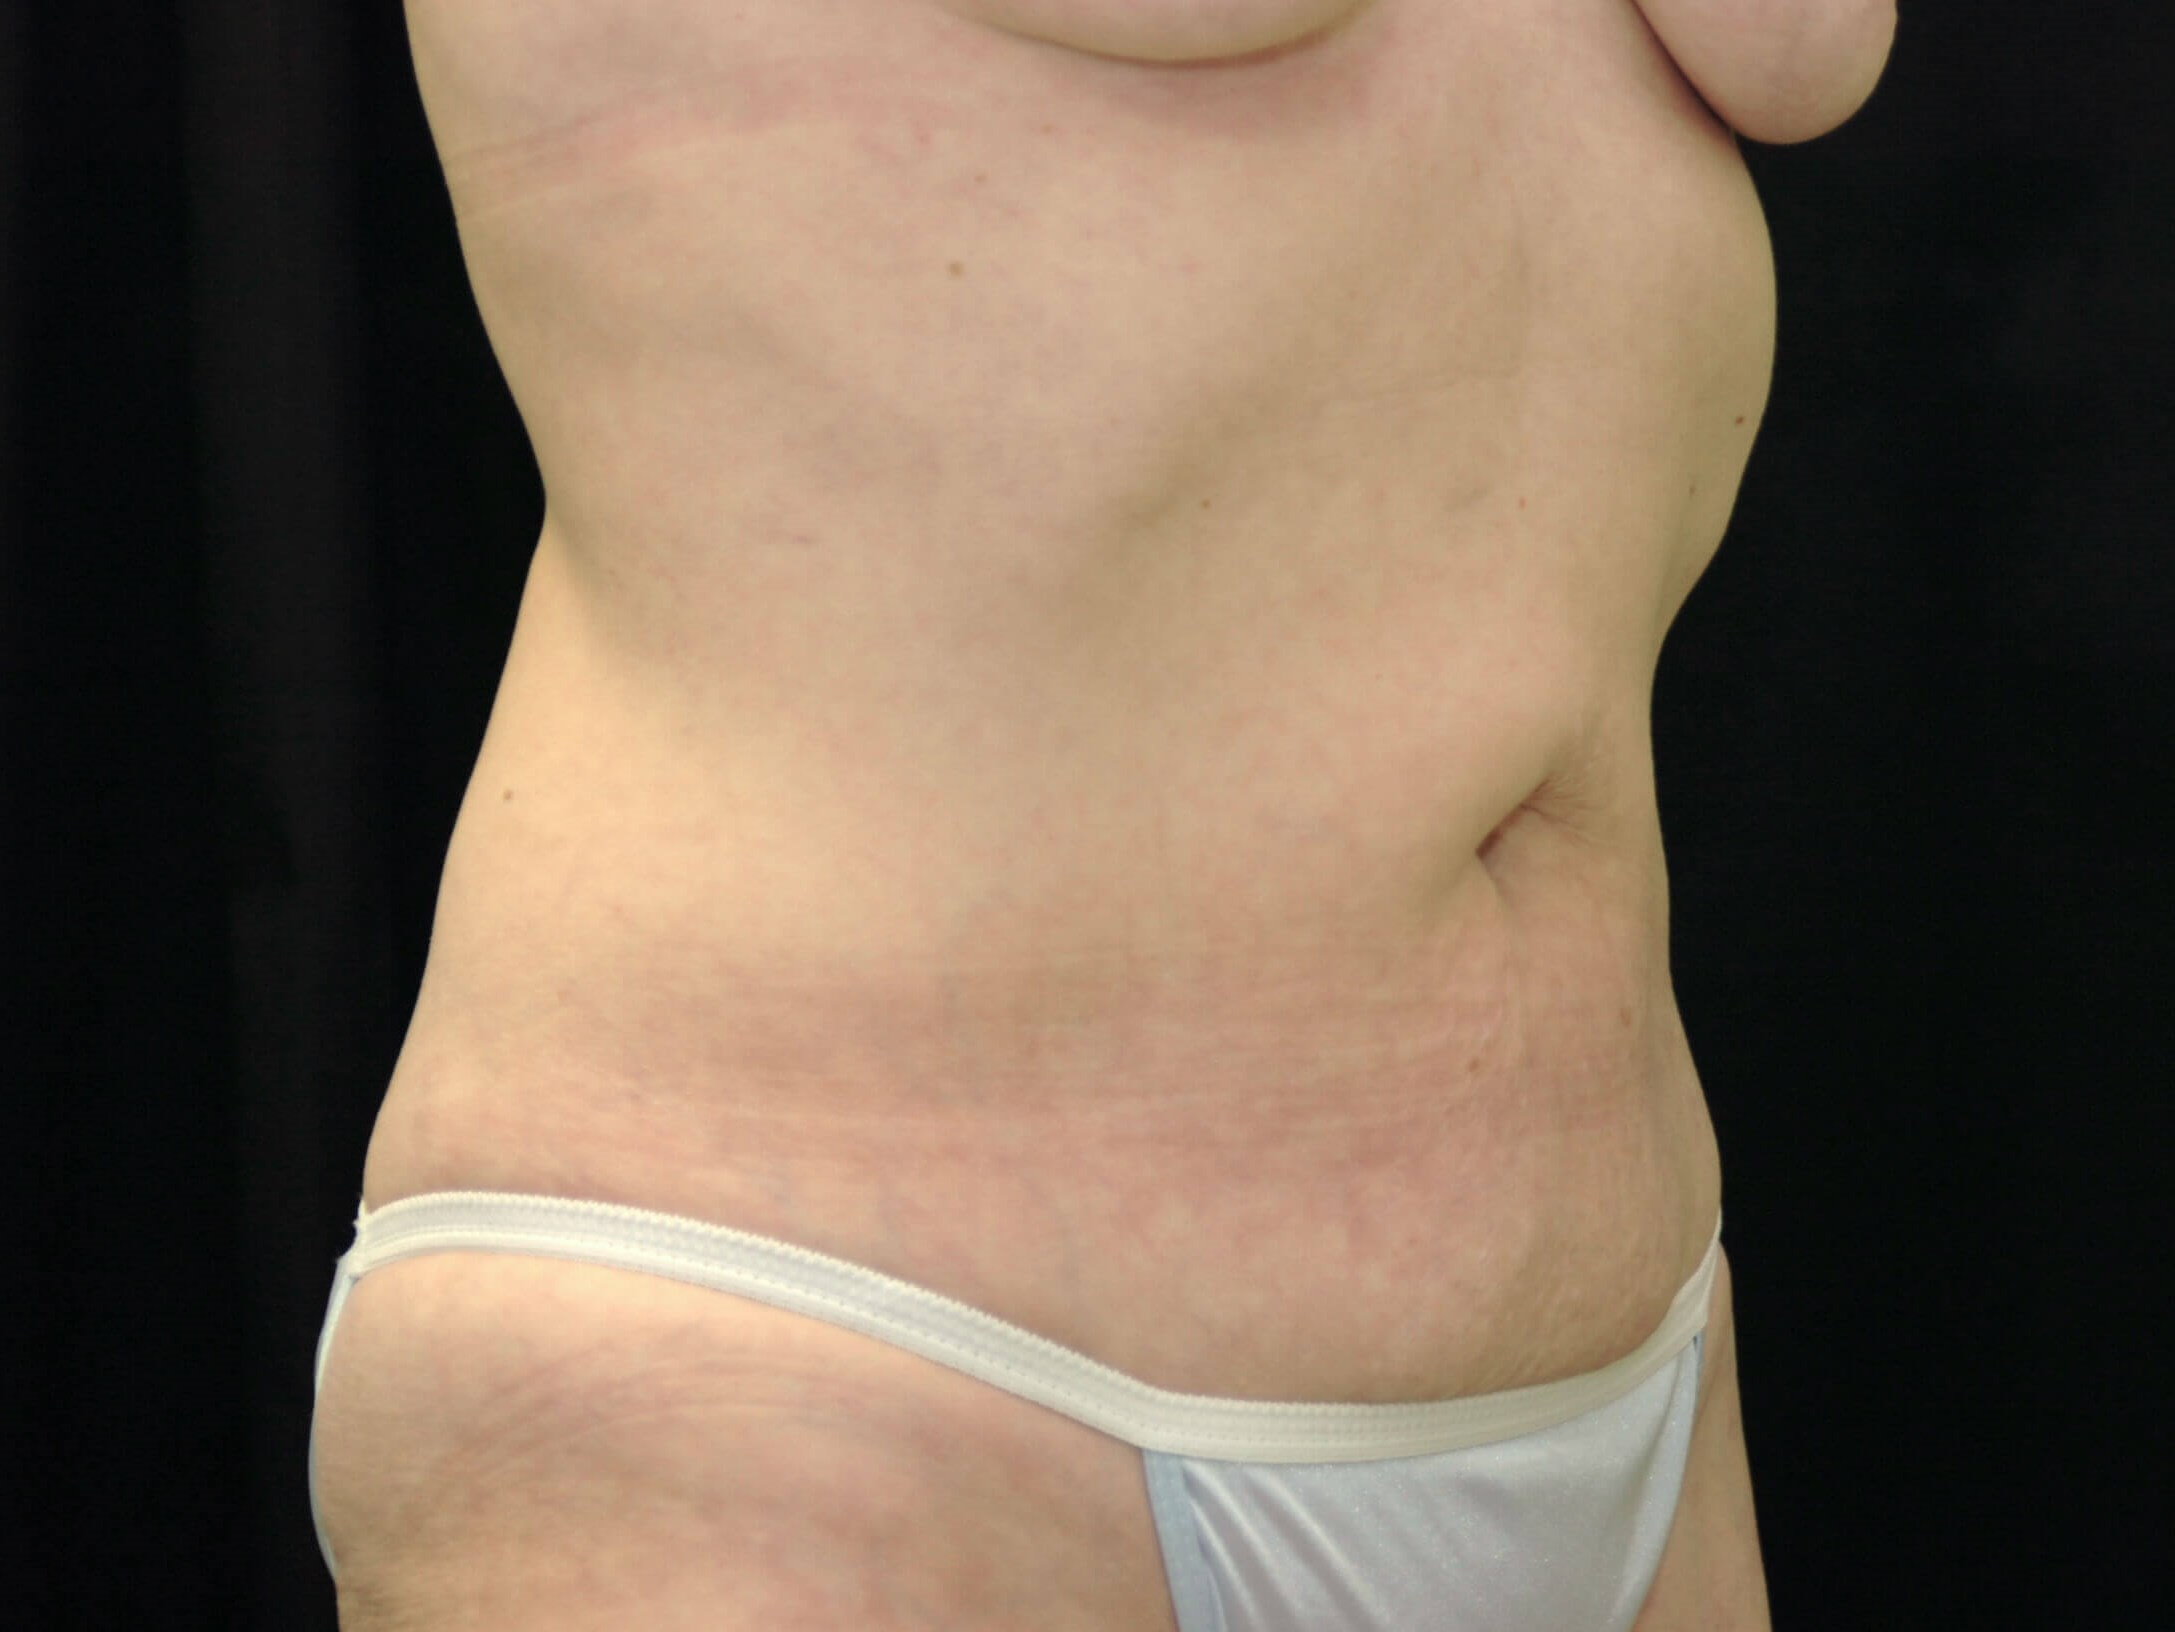 DALLAS, TEXAS WOMAN HAS TUMMY TUCK TO REJUVENATE HER WAISTLINE